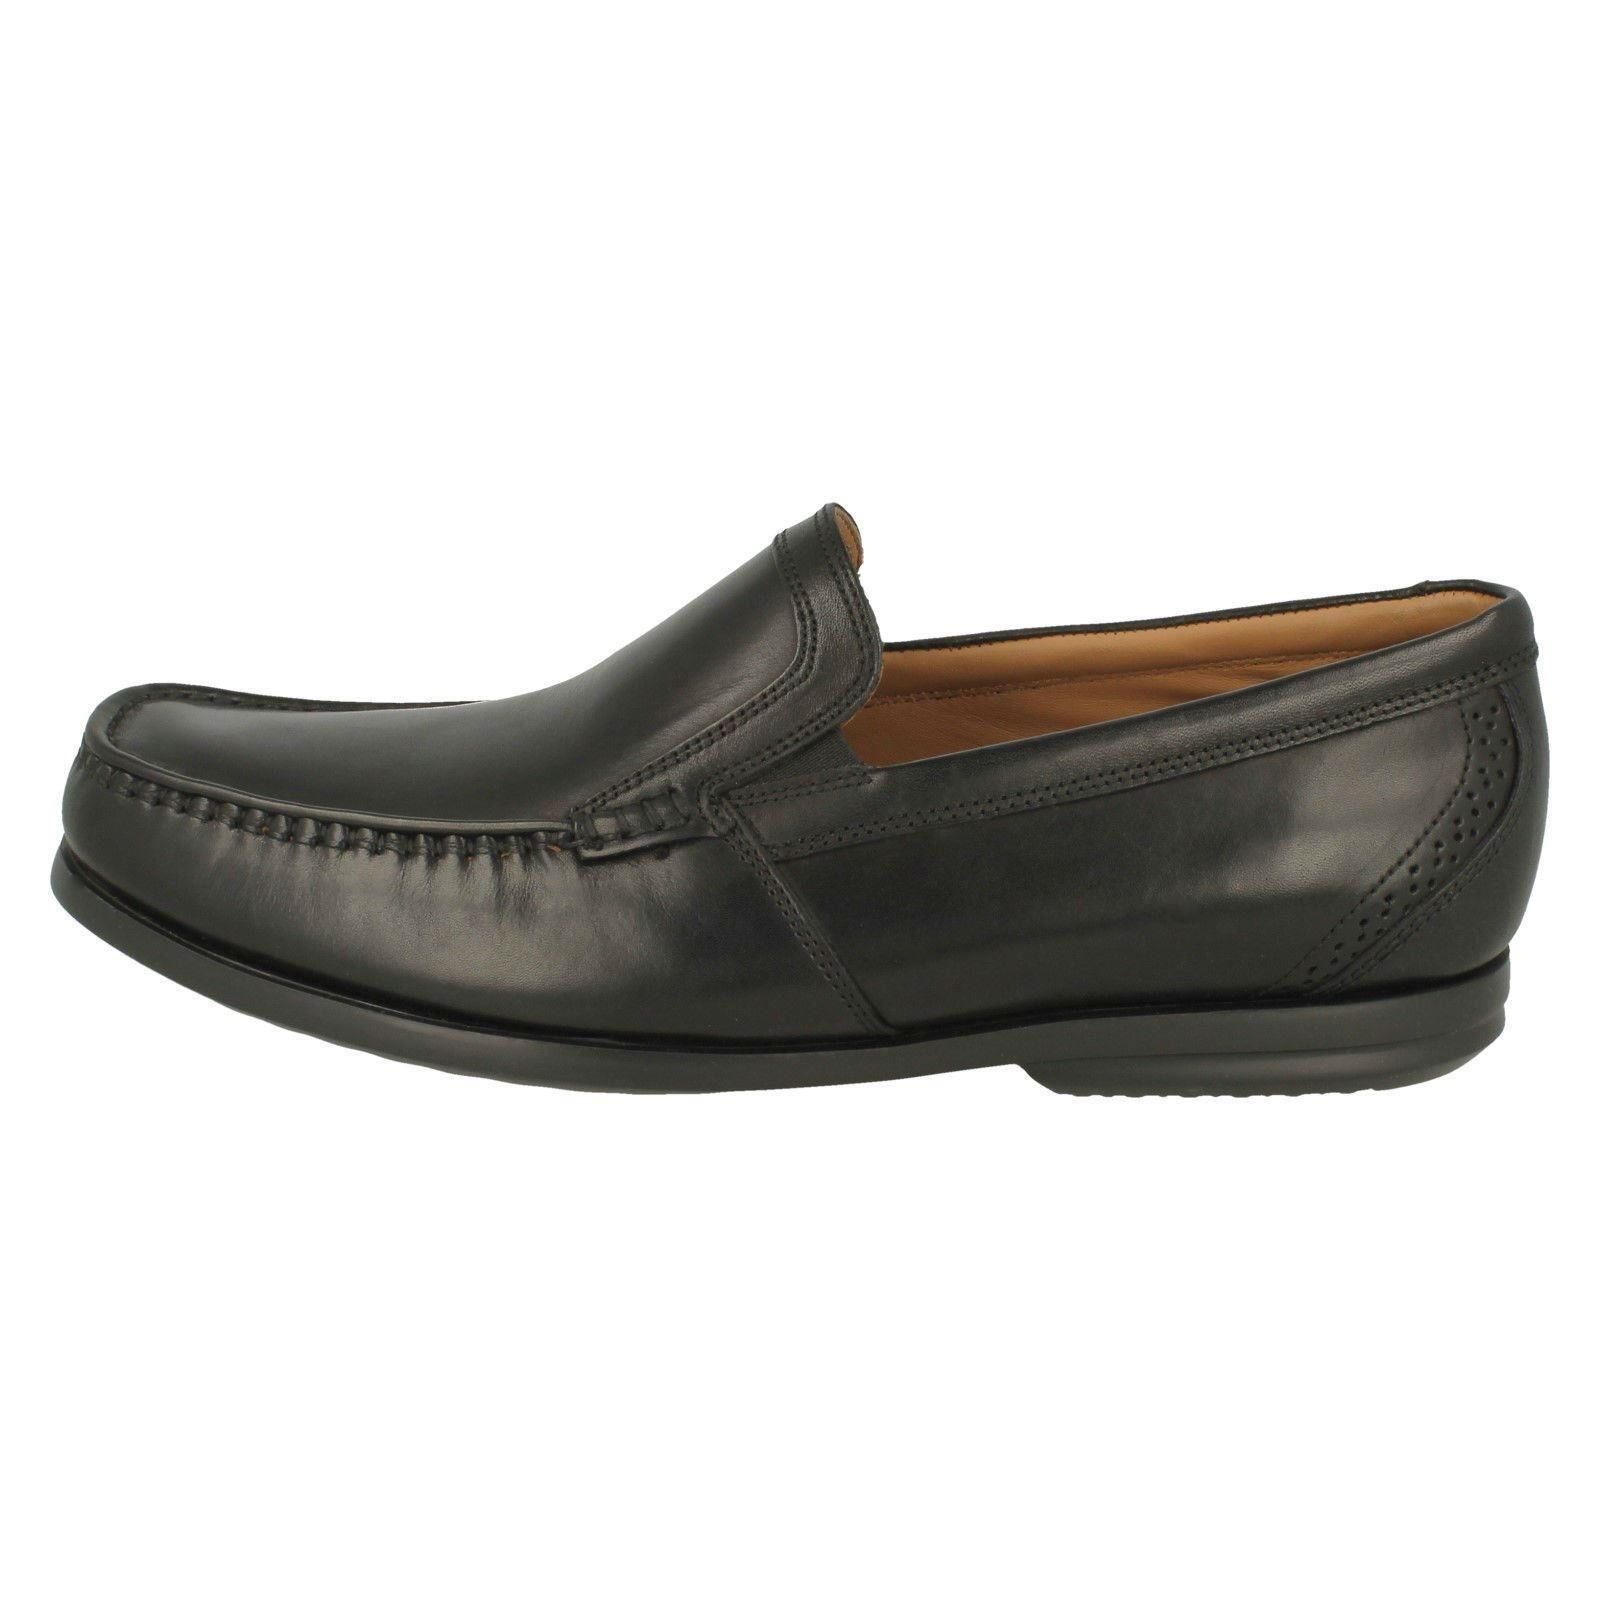 Clarks  - Uomo Slip On Formal Loafers -  Un Gala Free 3896d7